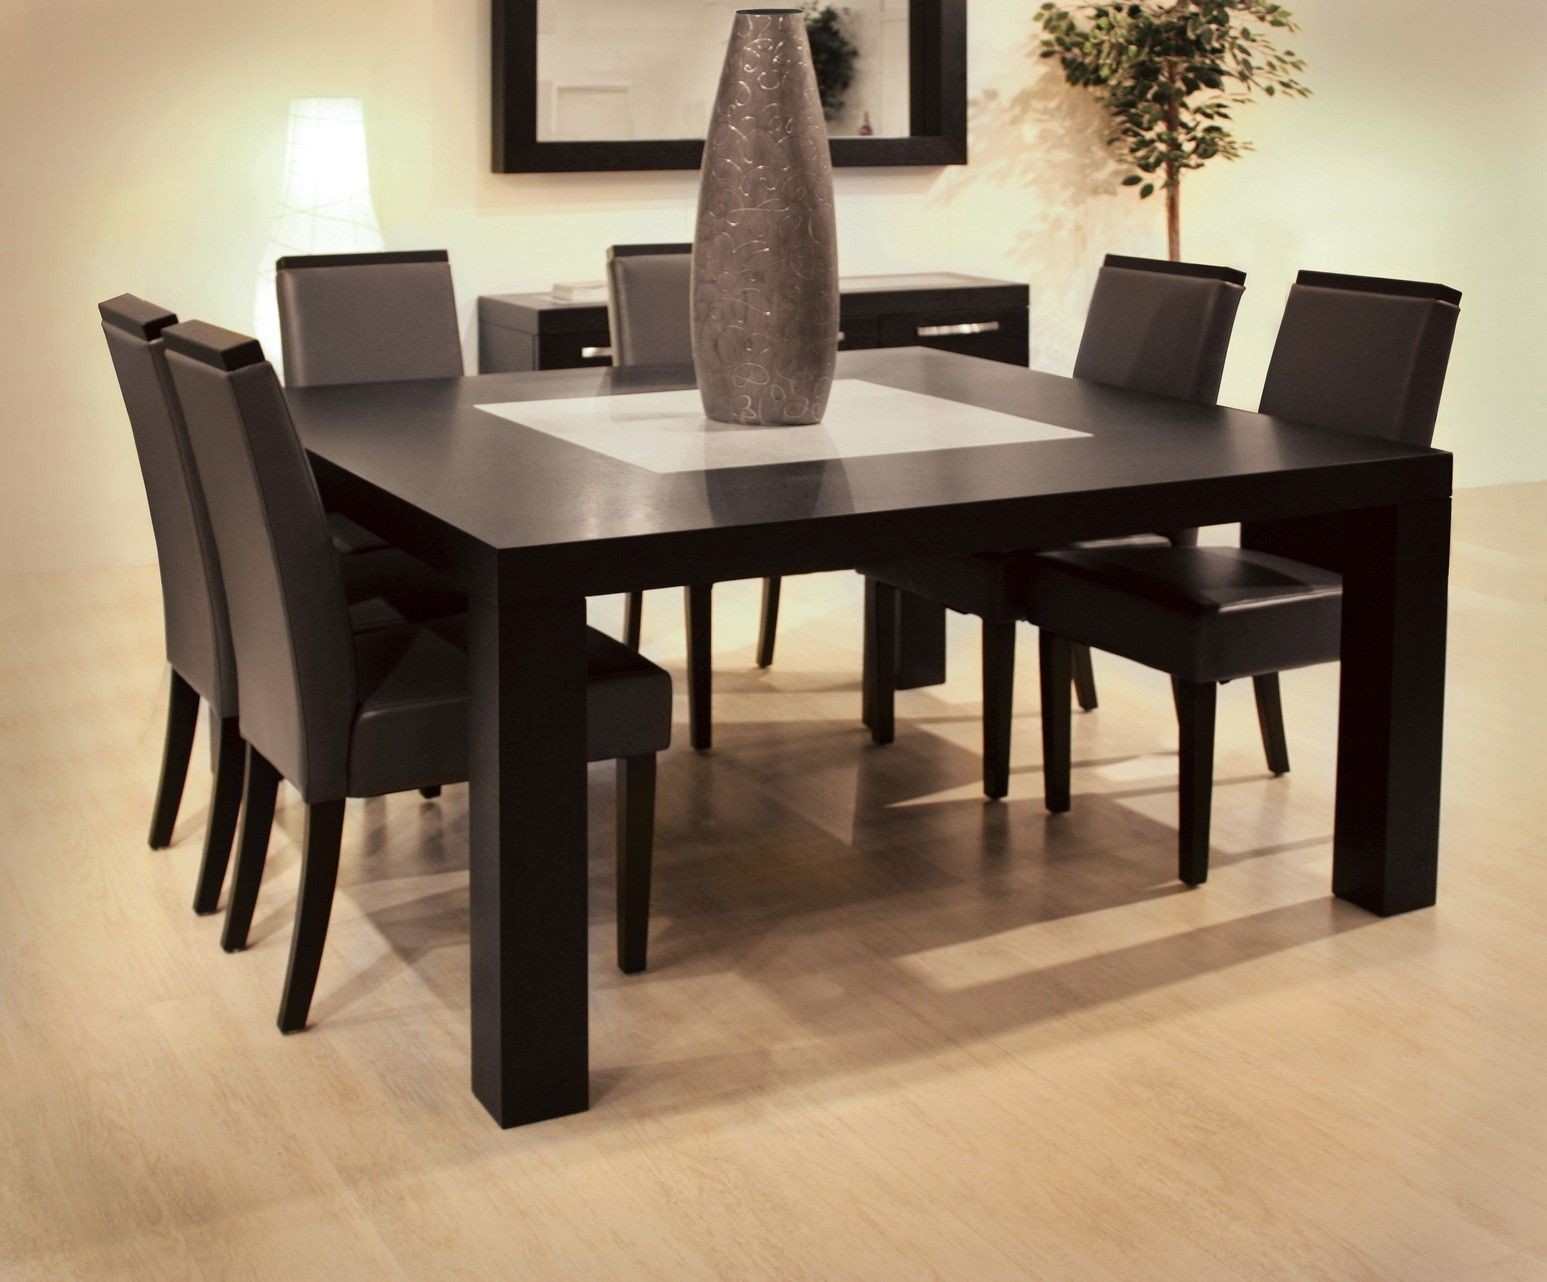 The Best Dining Room Tables Alluring Design Inspiration